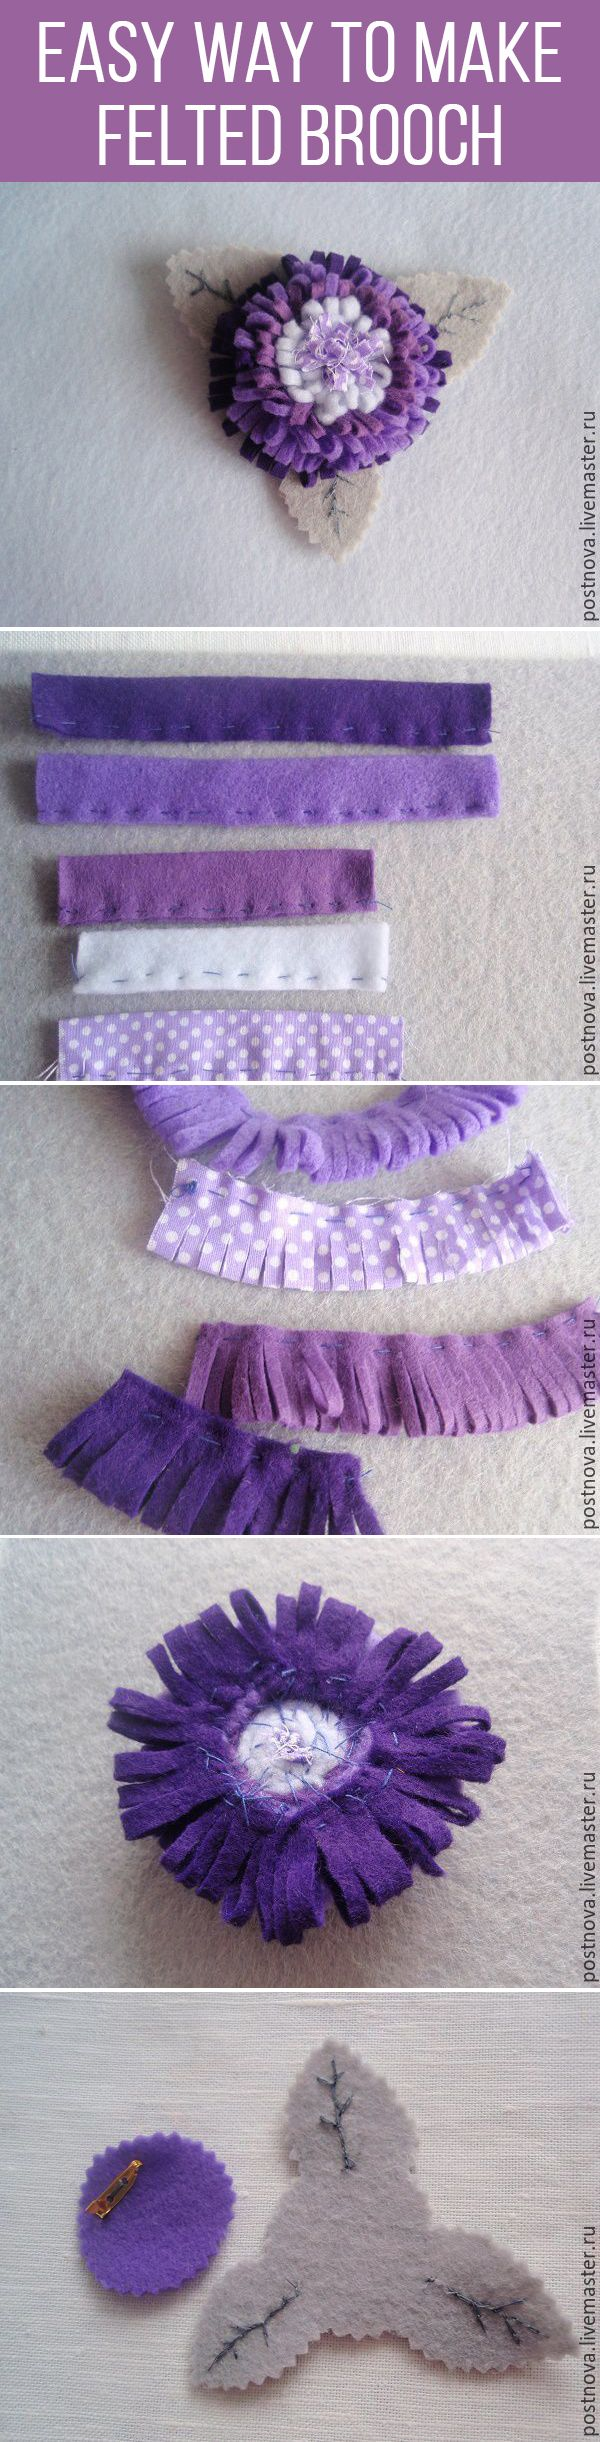 Easy way to make felted brooch